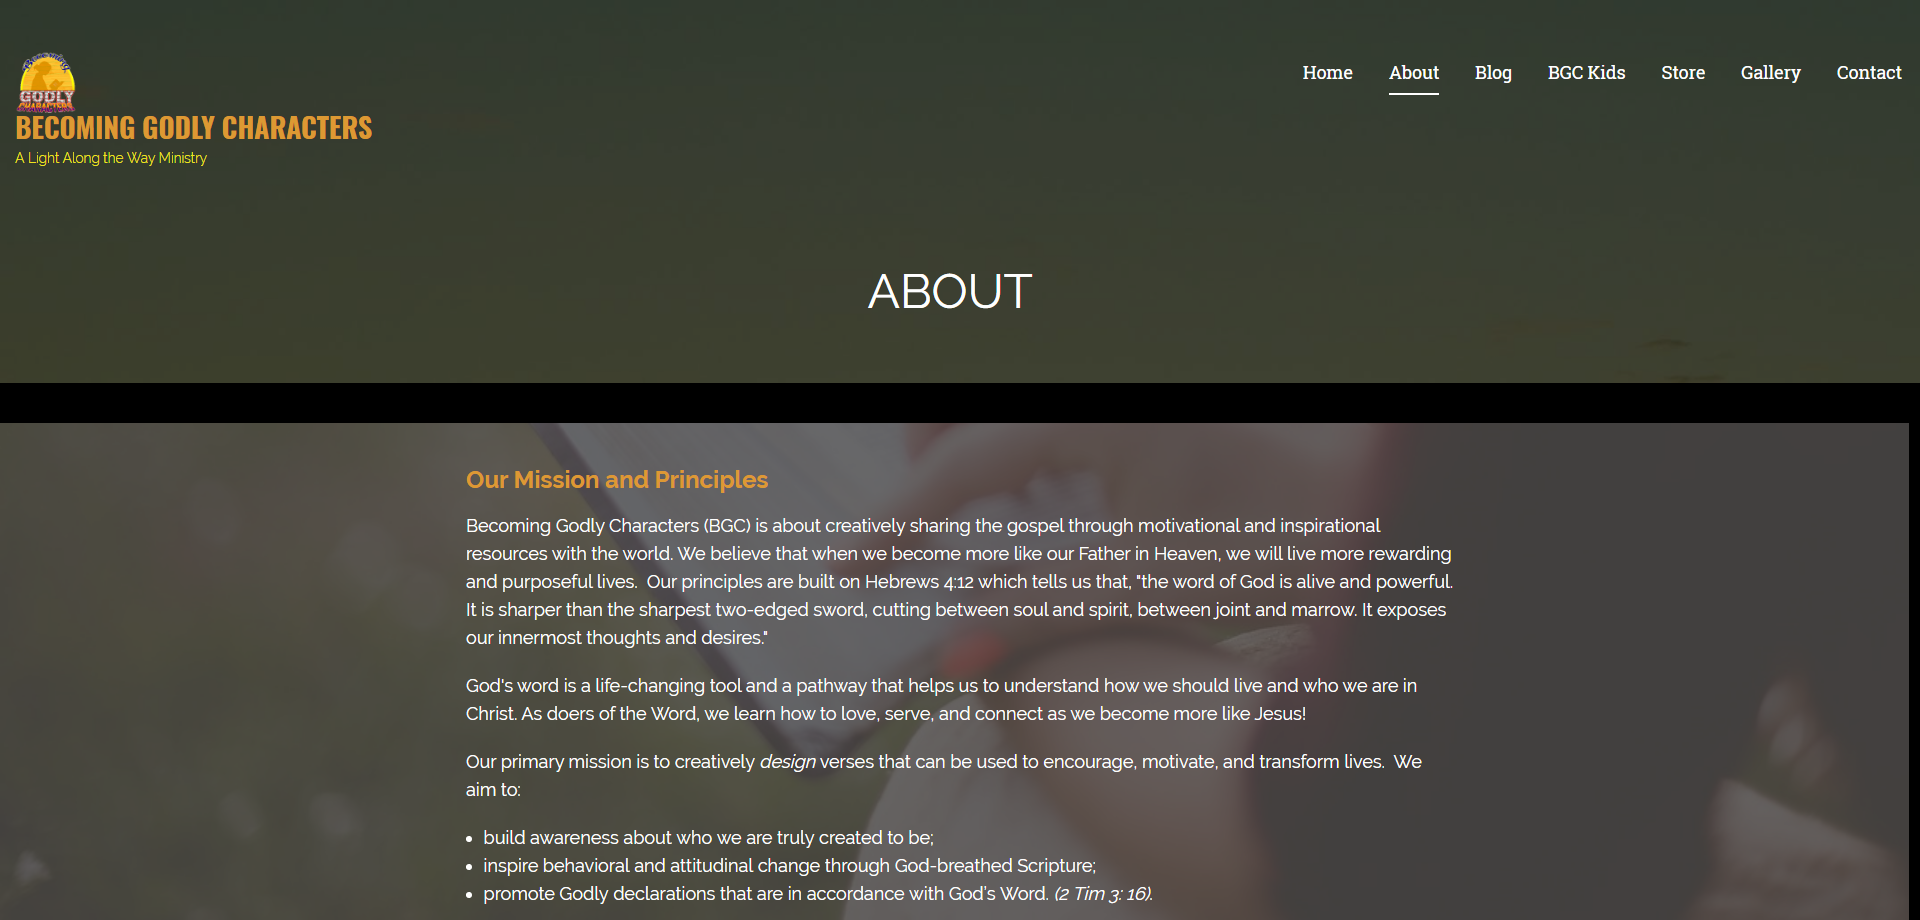 Becoming Godly Characters About Web page